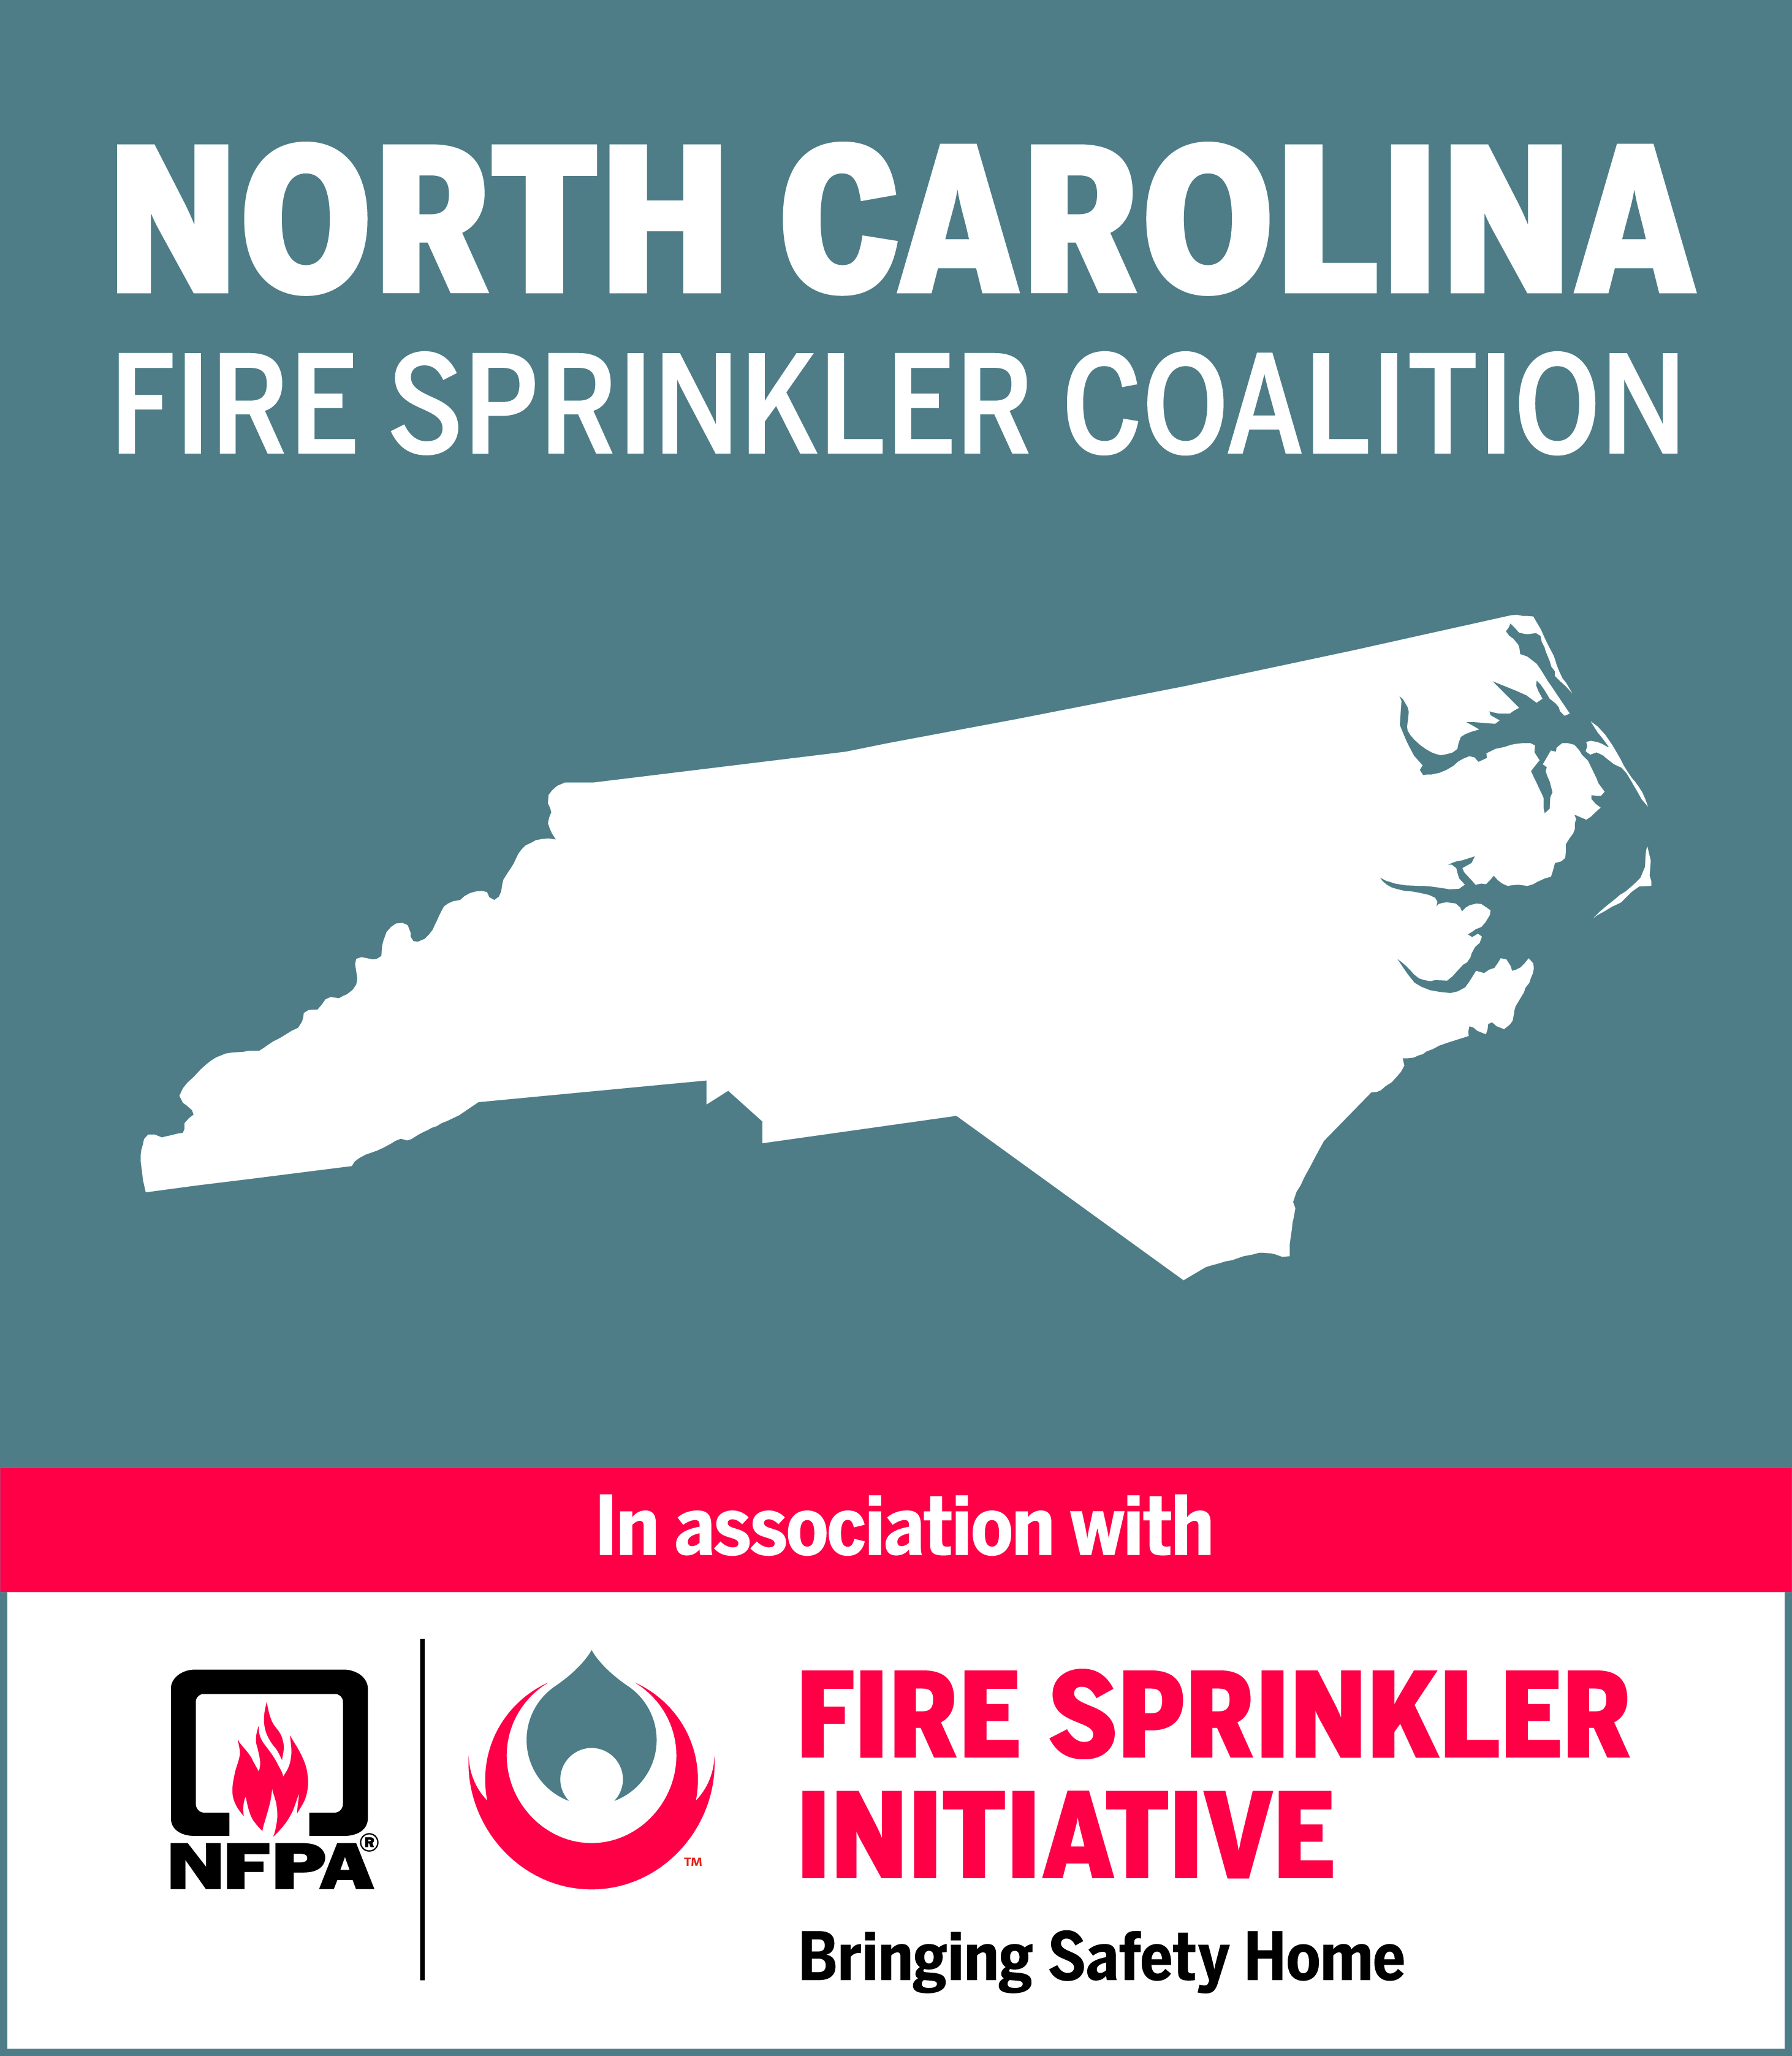 North Carolina Fire Sprinkler Coalition